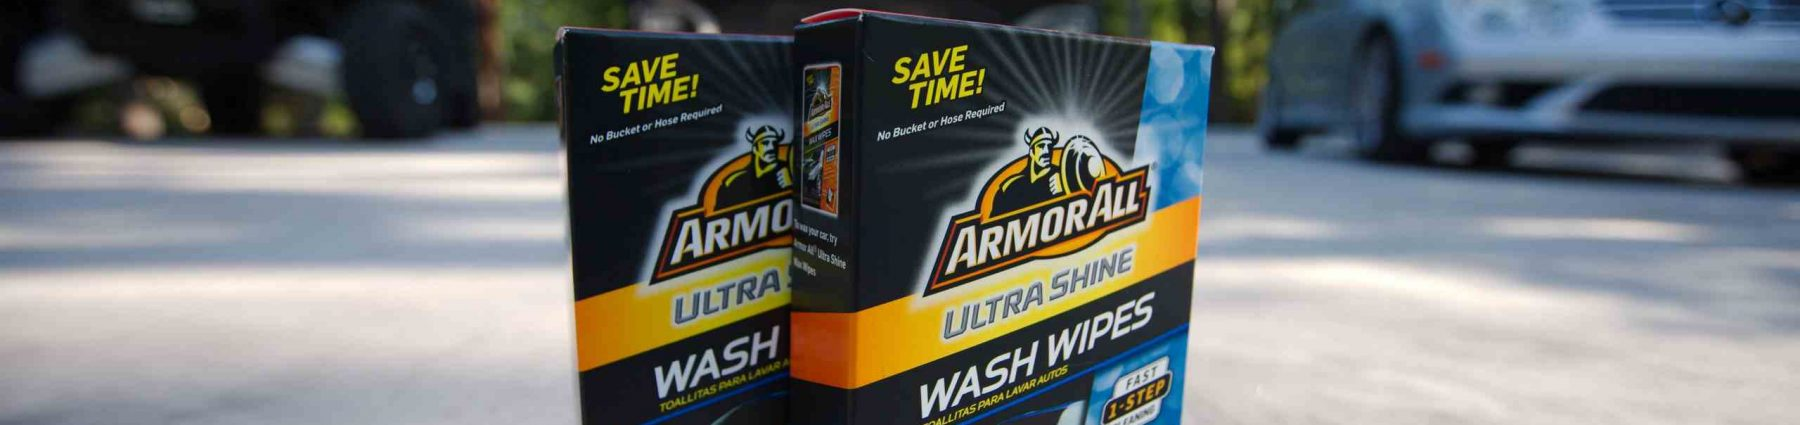 The Armor All Ultra Shine Wash Wipes Torture Test!